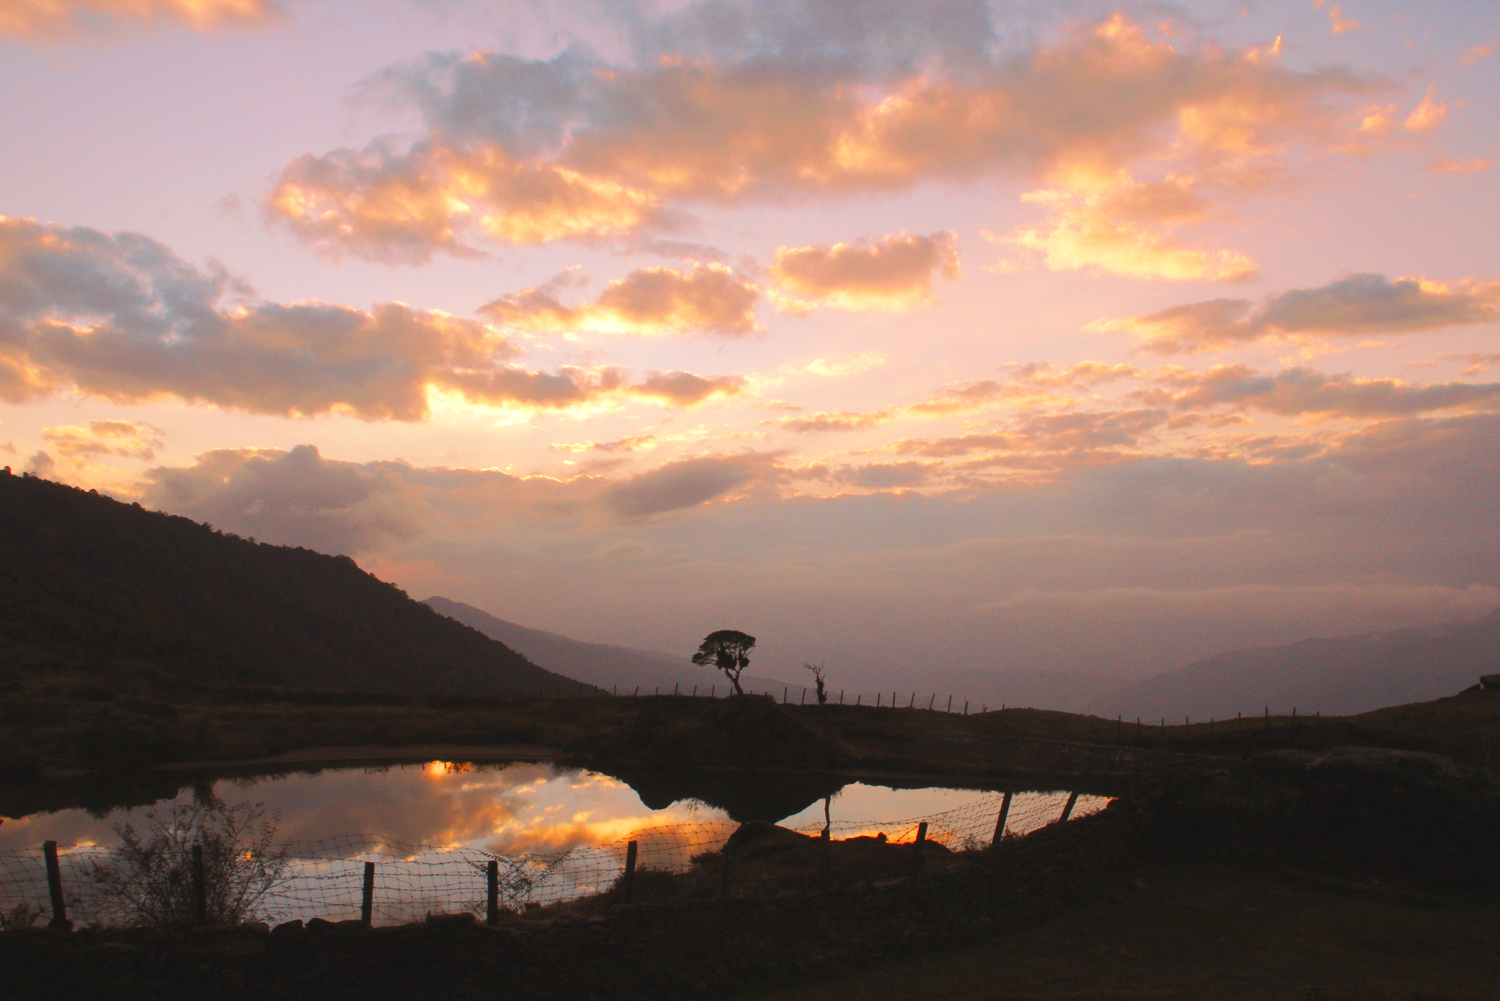 Nepal.EastNepal.GuphaPokhari.Sunset.Reflection.Clouds1.jpg